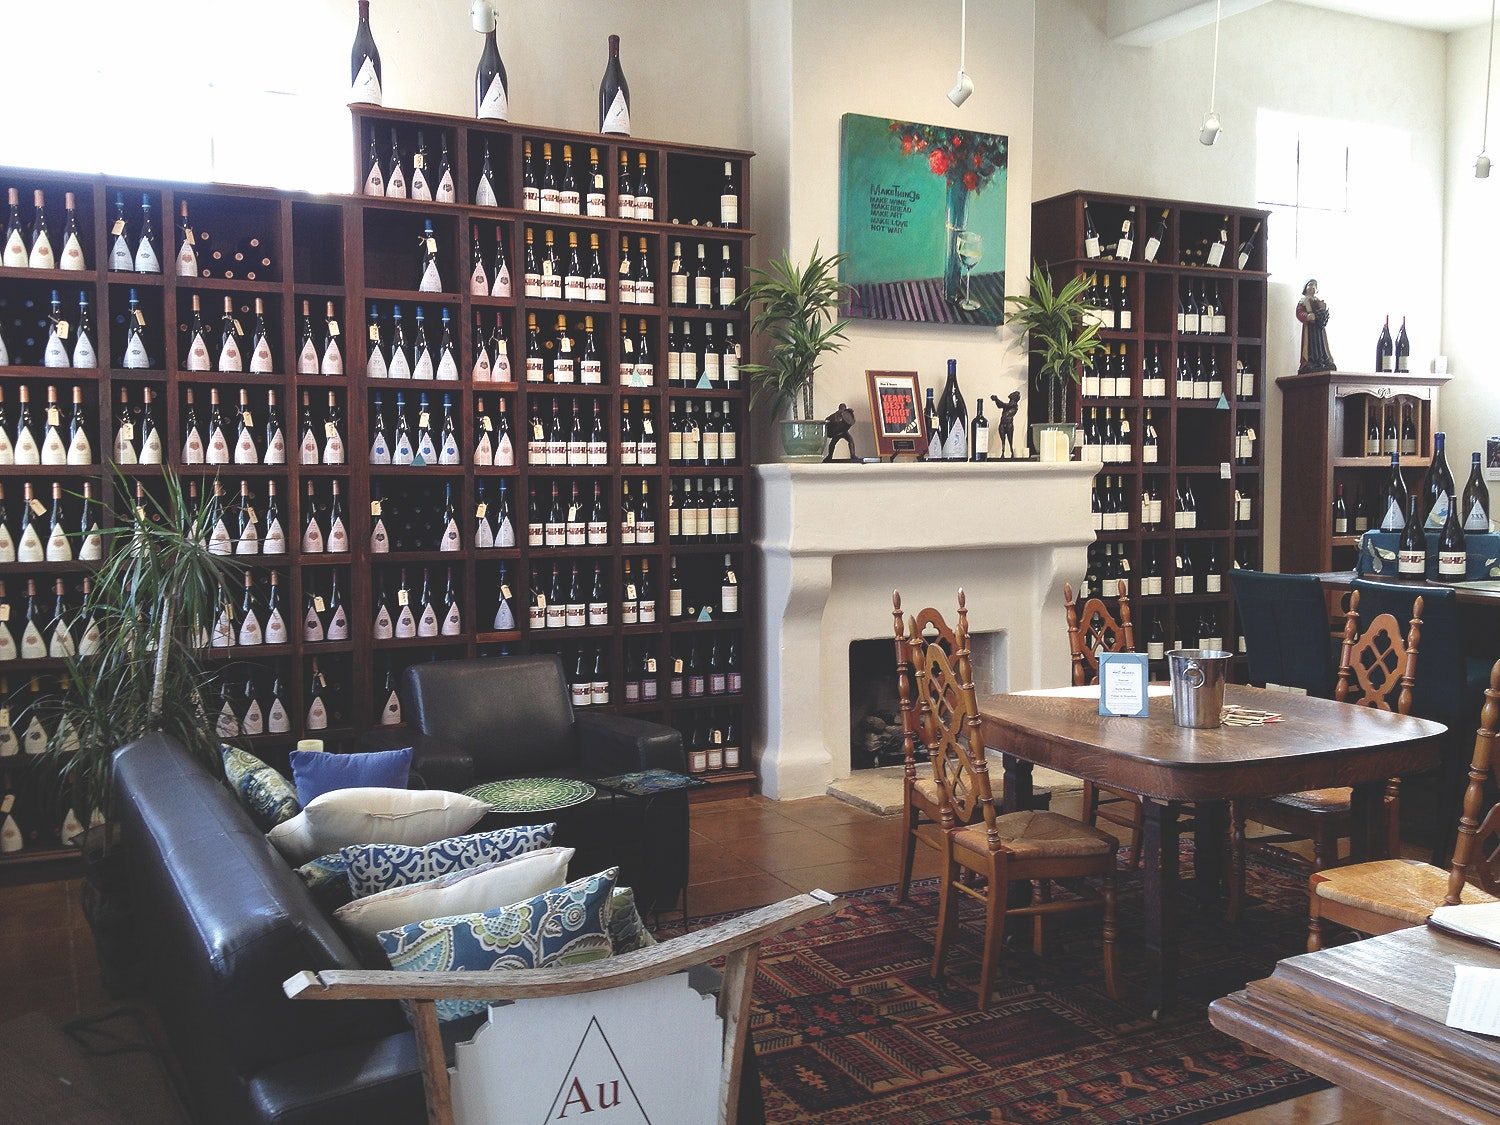 The tasting room and wine library at Au Bon Climat